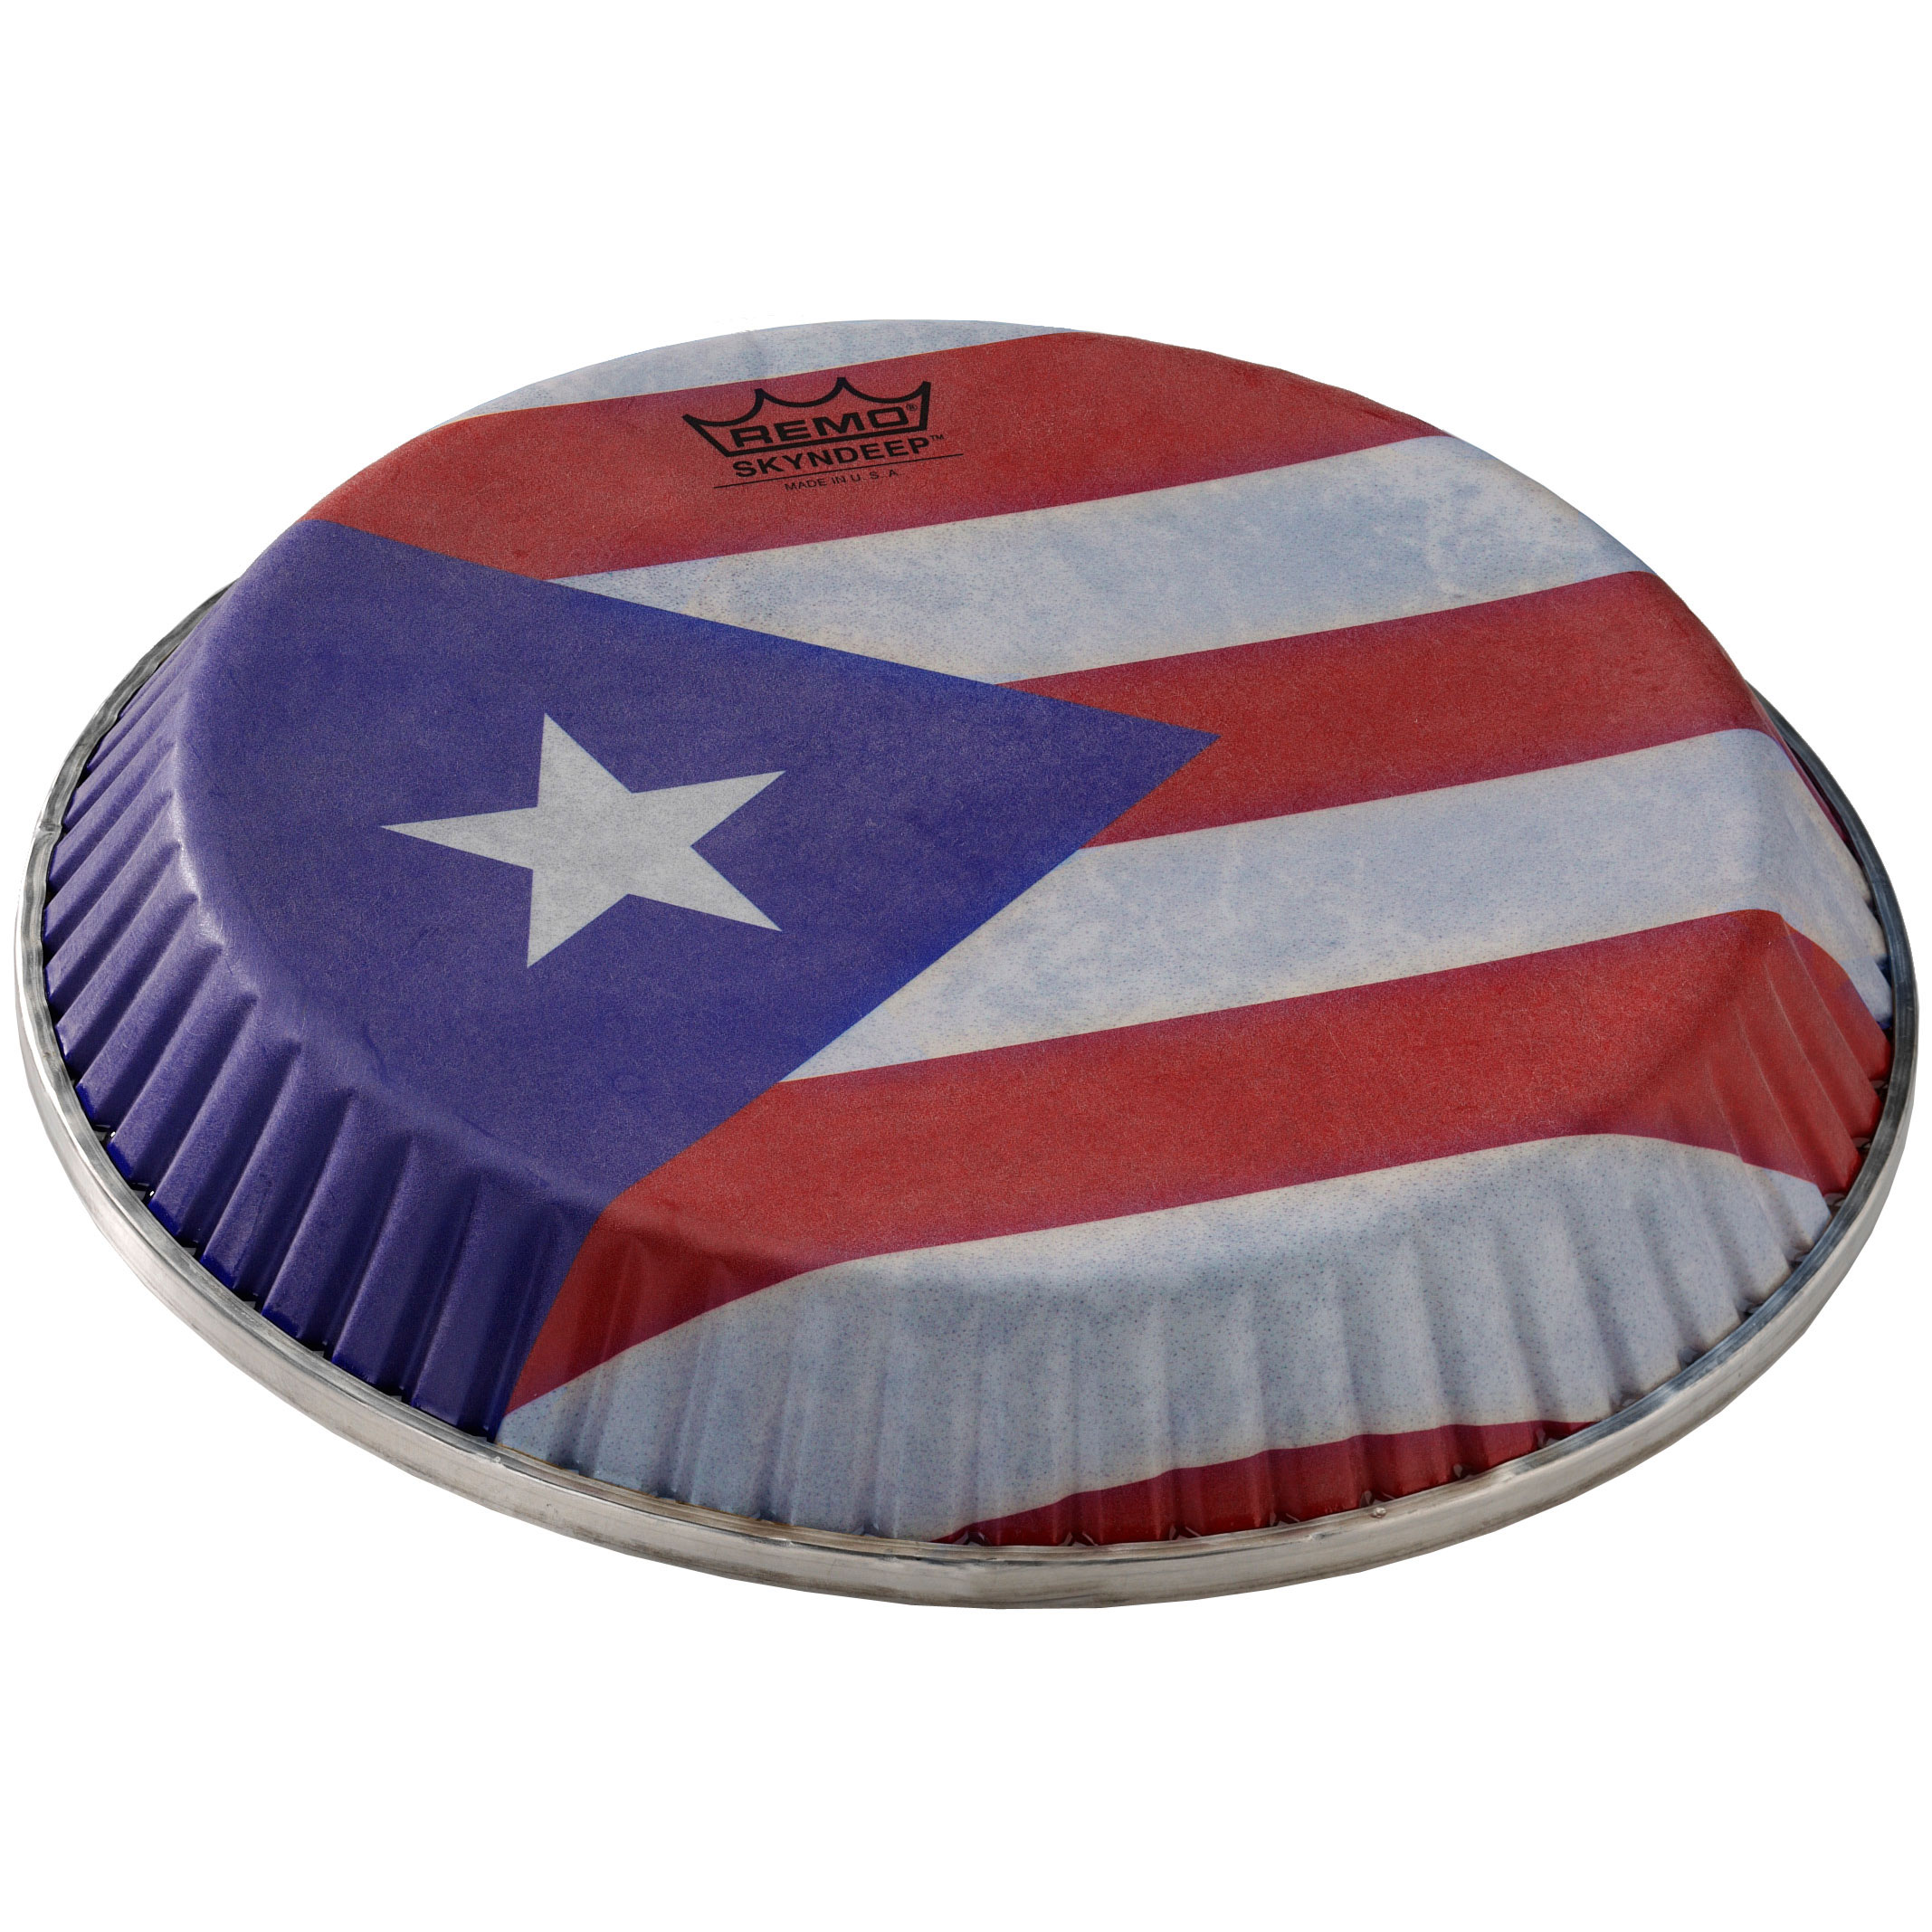 """Remo 11.75"""" Symmetry Skyndeep Conga Drum Head (D1 Collar) with Puerto Rican Flag Graphic"""